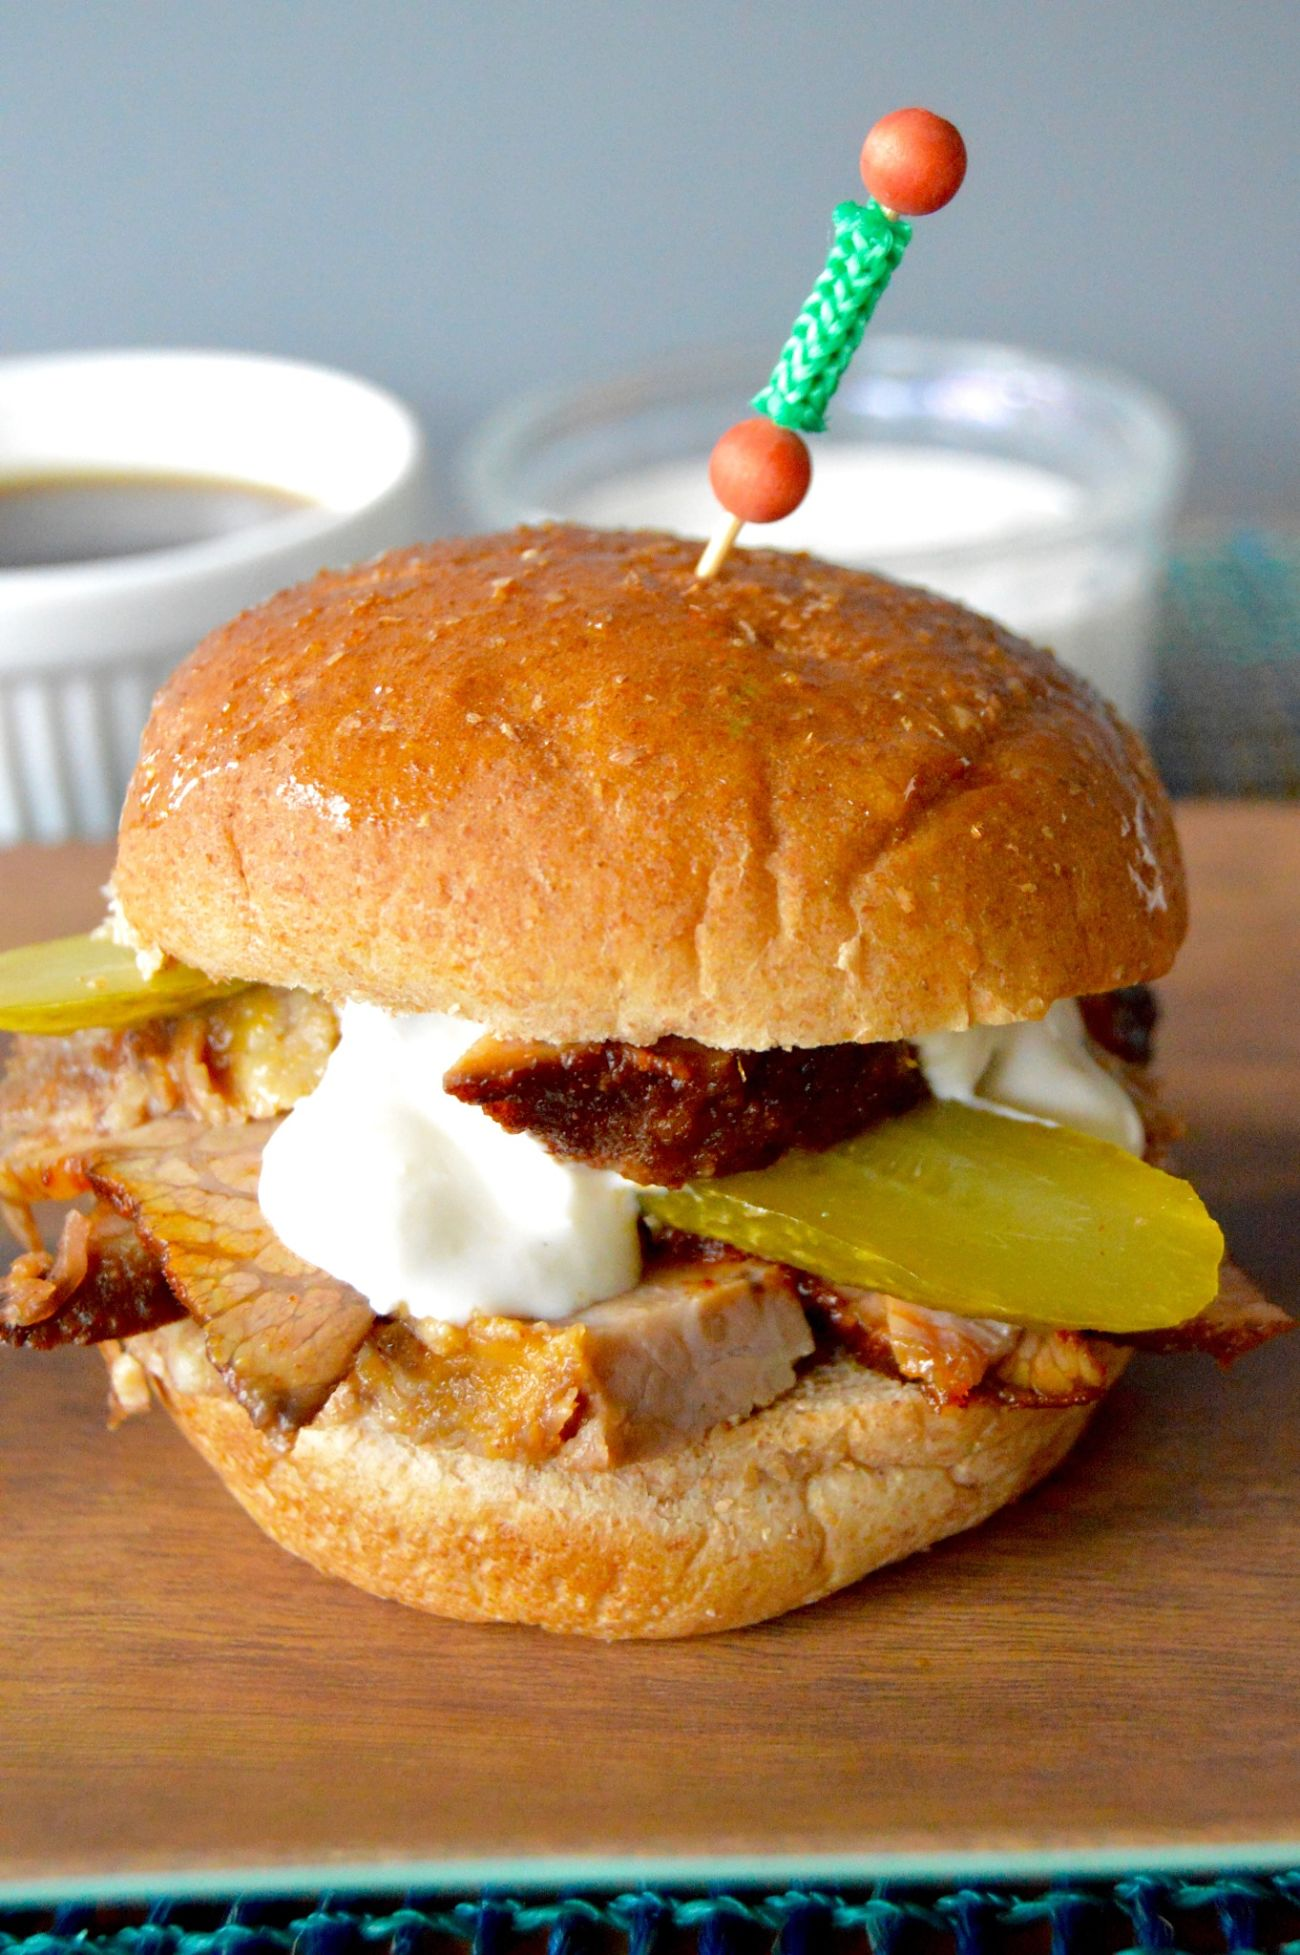 Spicy Beef Brisket Sliders are super tender, juicy and jam packed with flavor. Only 10 minutes to prep, then the rest is leave alone cooking time! Great for big parties where you need single serving foods!